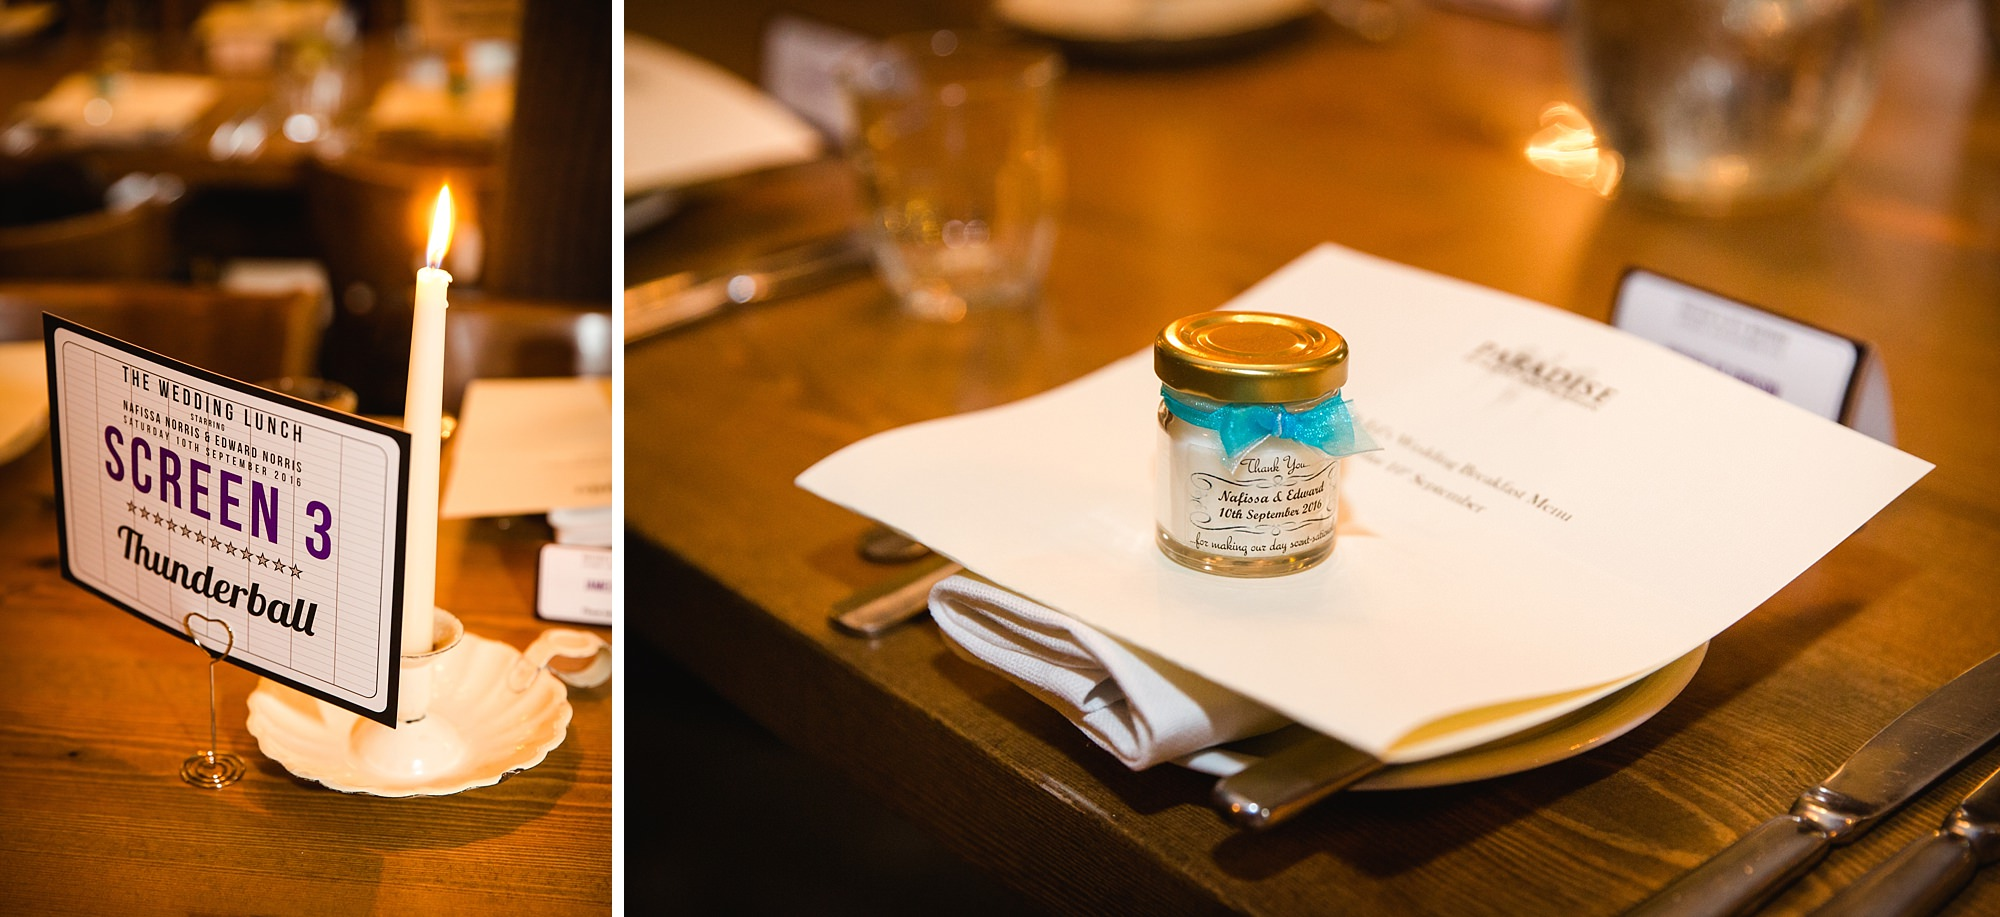 Paradise by way of Kensal Green wedding favours